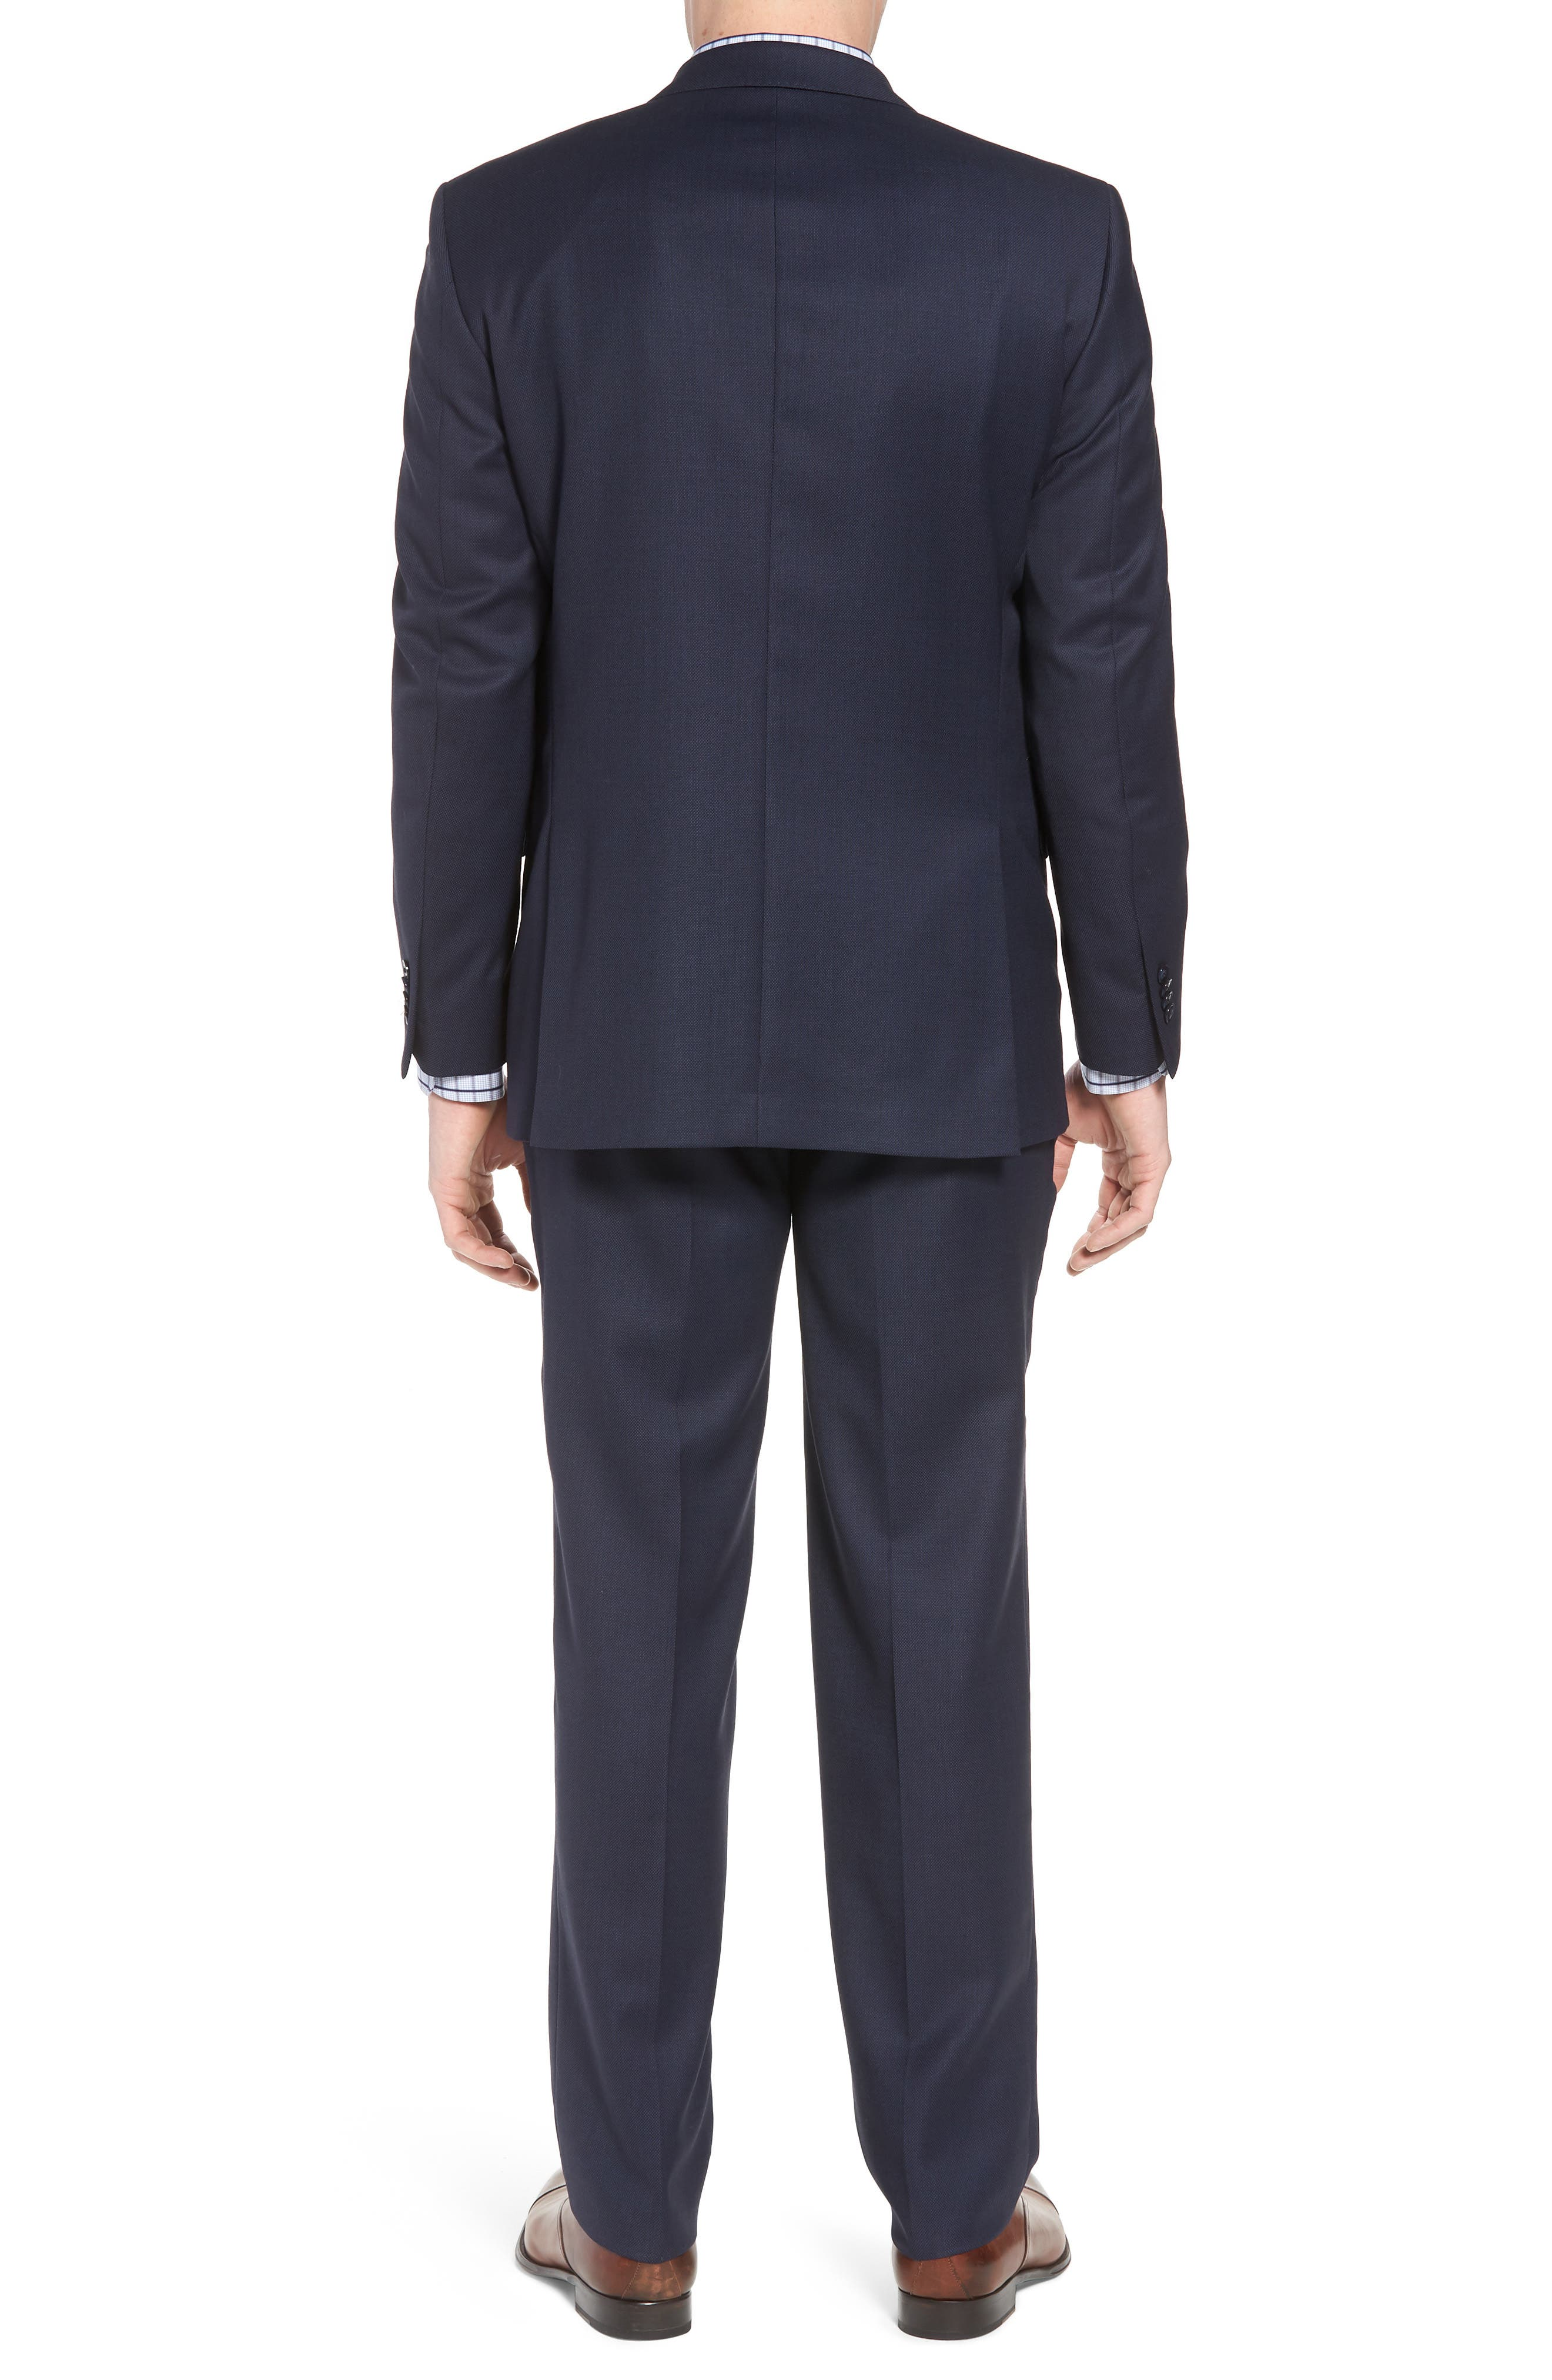 PETER MILLAR,                             Classic Fit Bird's Eye Wool Suit,                             Alternate thumbnail 2, color,                             400